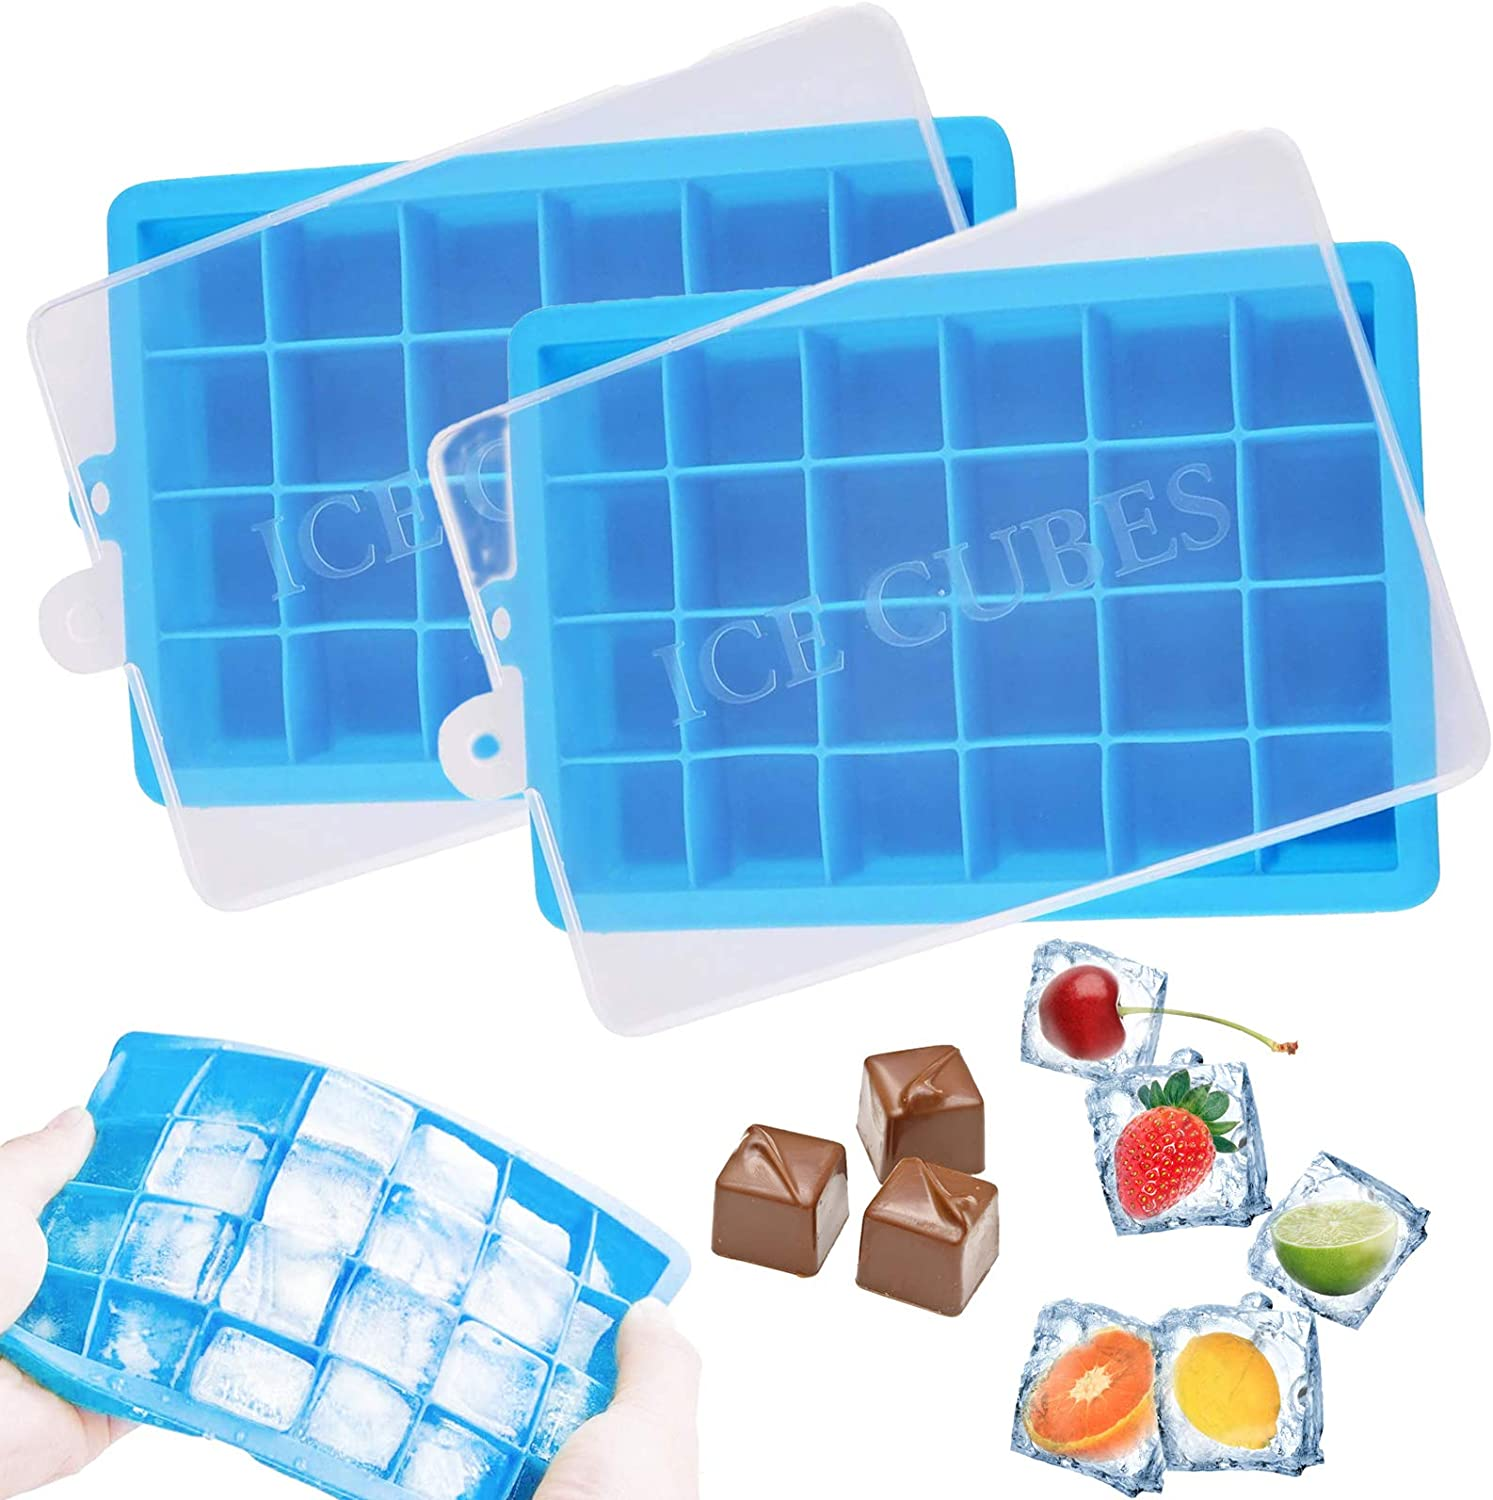 Ice Cube Trays 2 PCS Silicone Ice Cube Molds with Removable Lids Easy Release Flexible 48 Square Ice Pop Molds BPA Free for Chilled Drinks Whiskey Cocktail Food Stackable Reusable & Dishwasher Safe